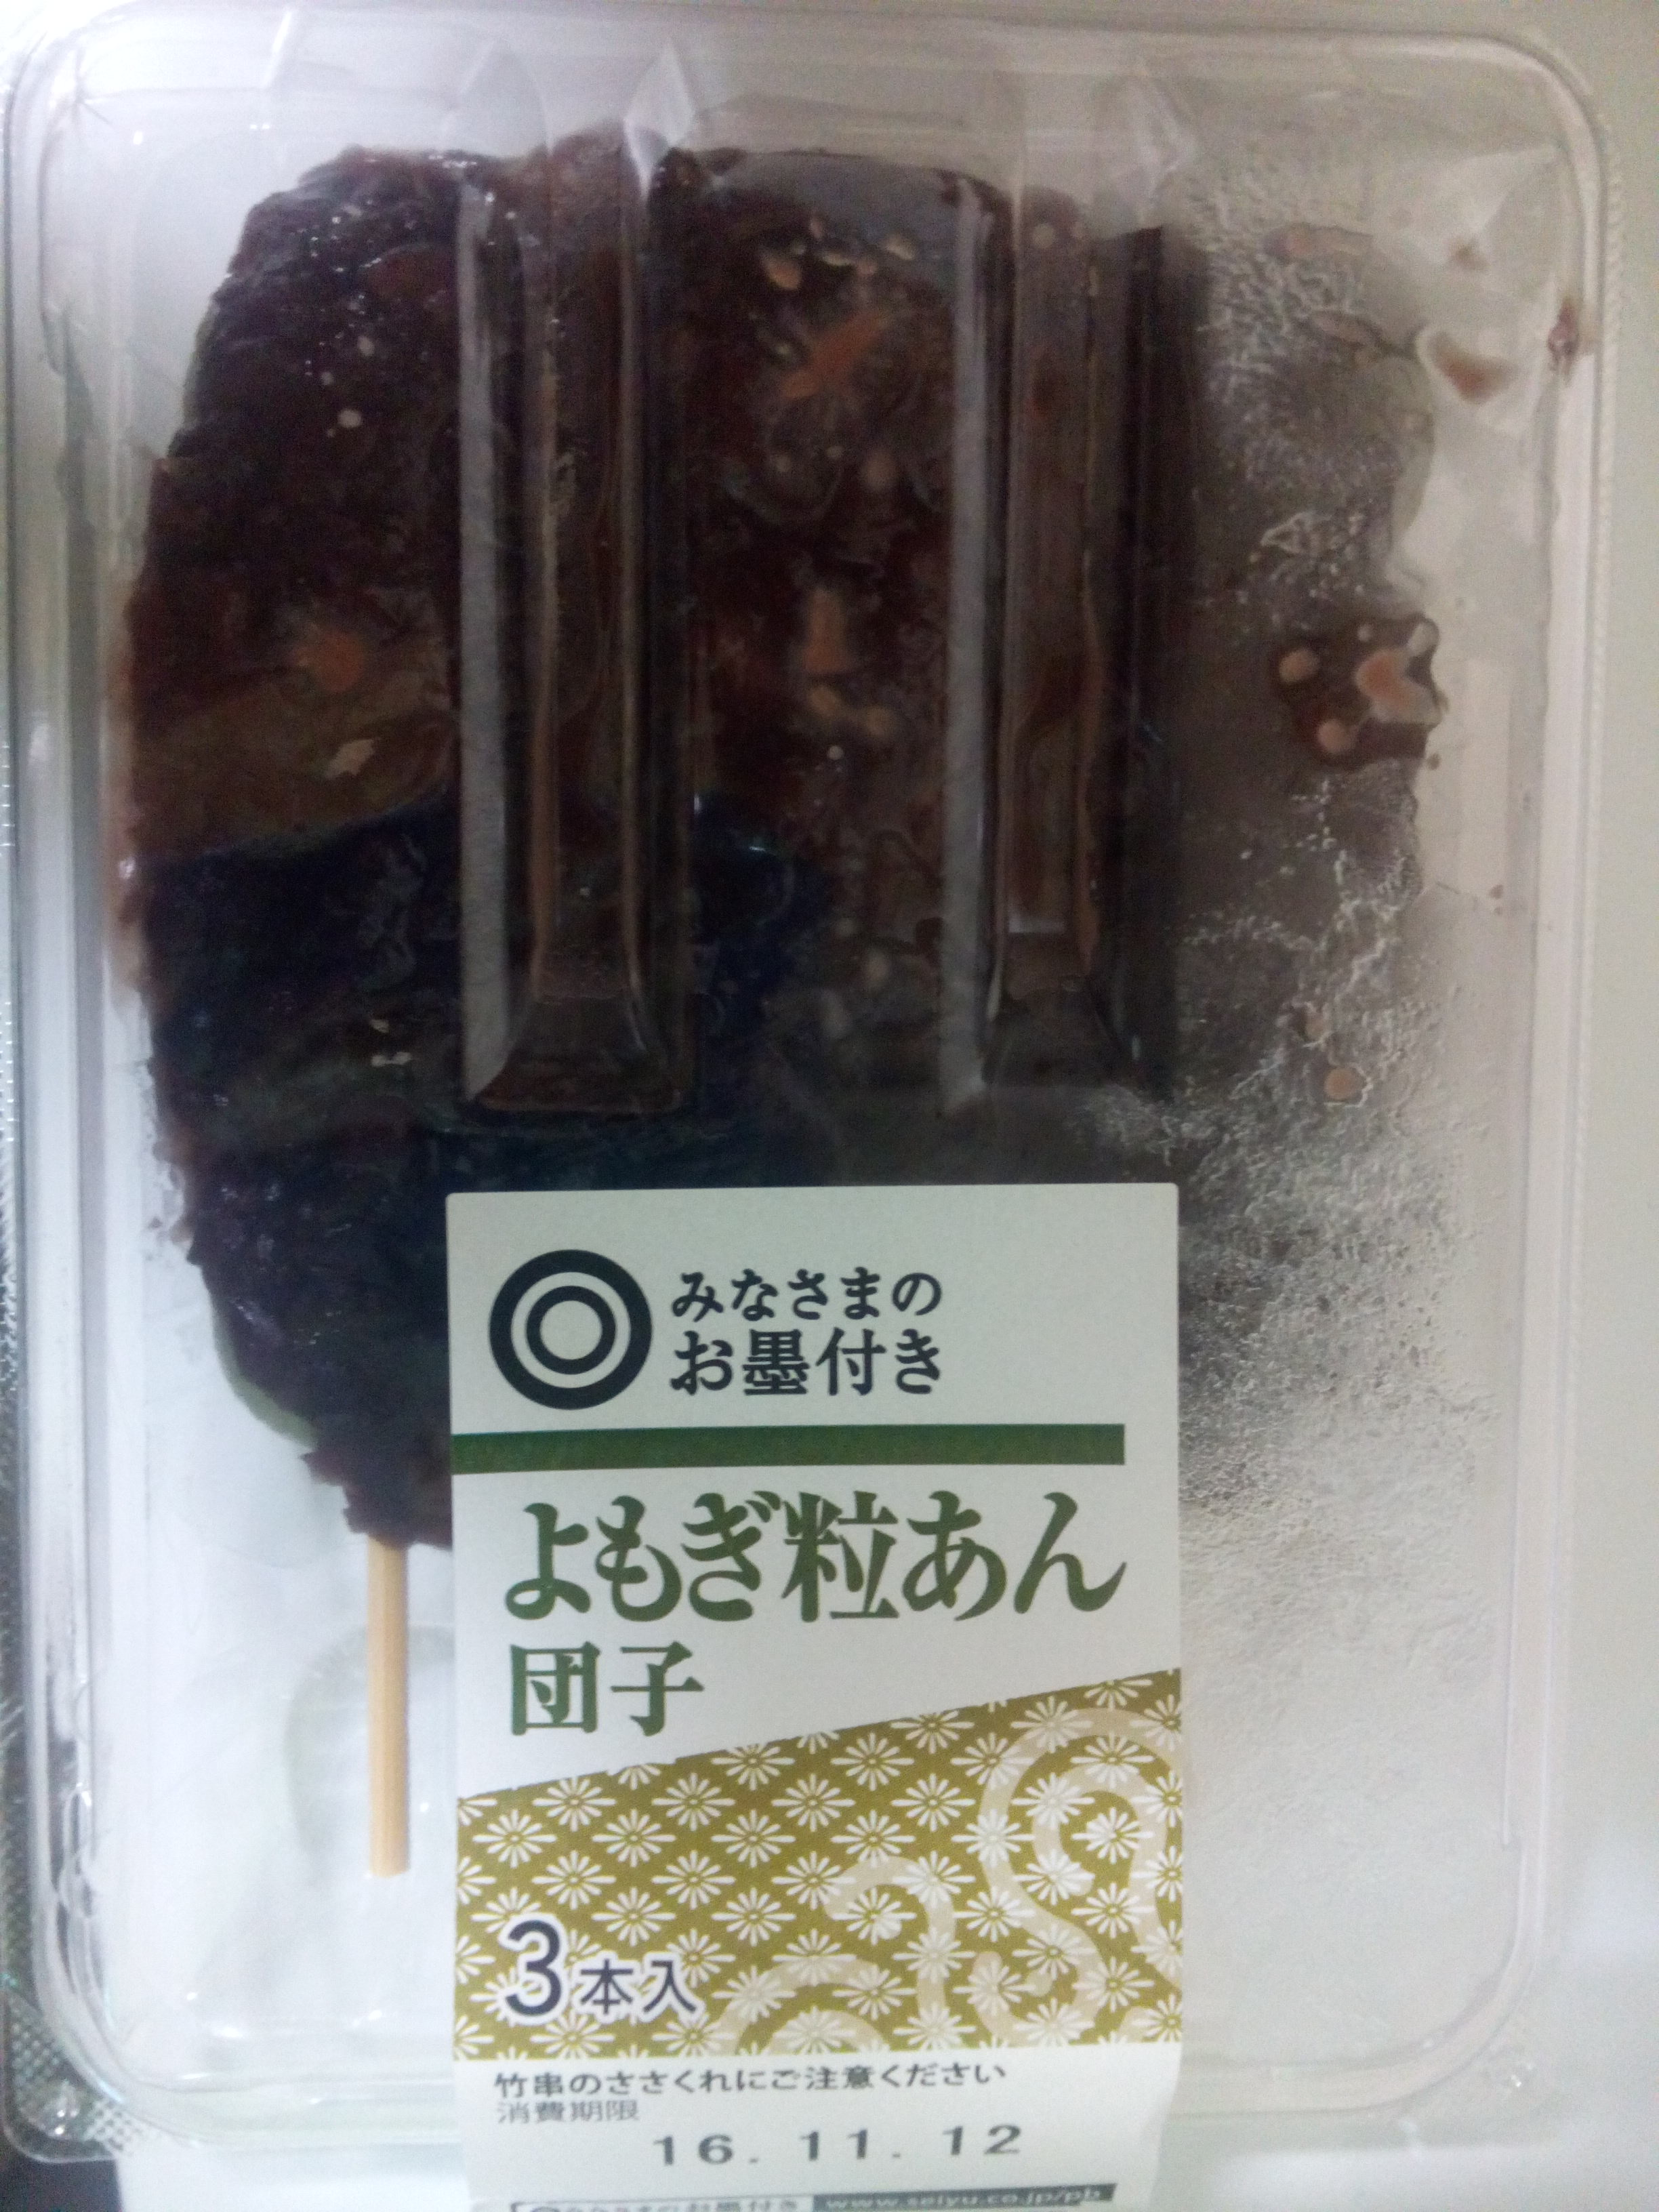 Green tea mochi on sticks with read bean sauce. I love anything smothered in red bean sauce.